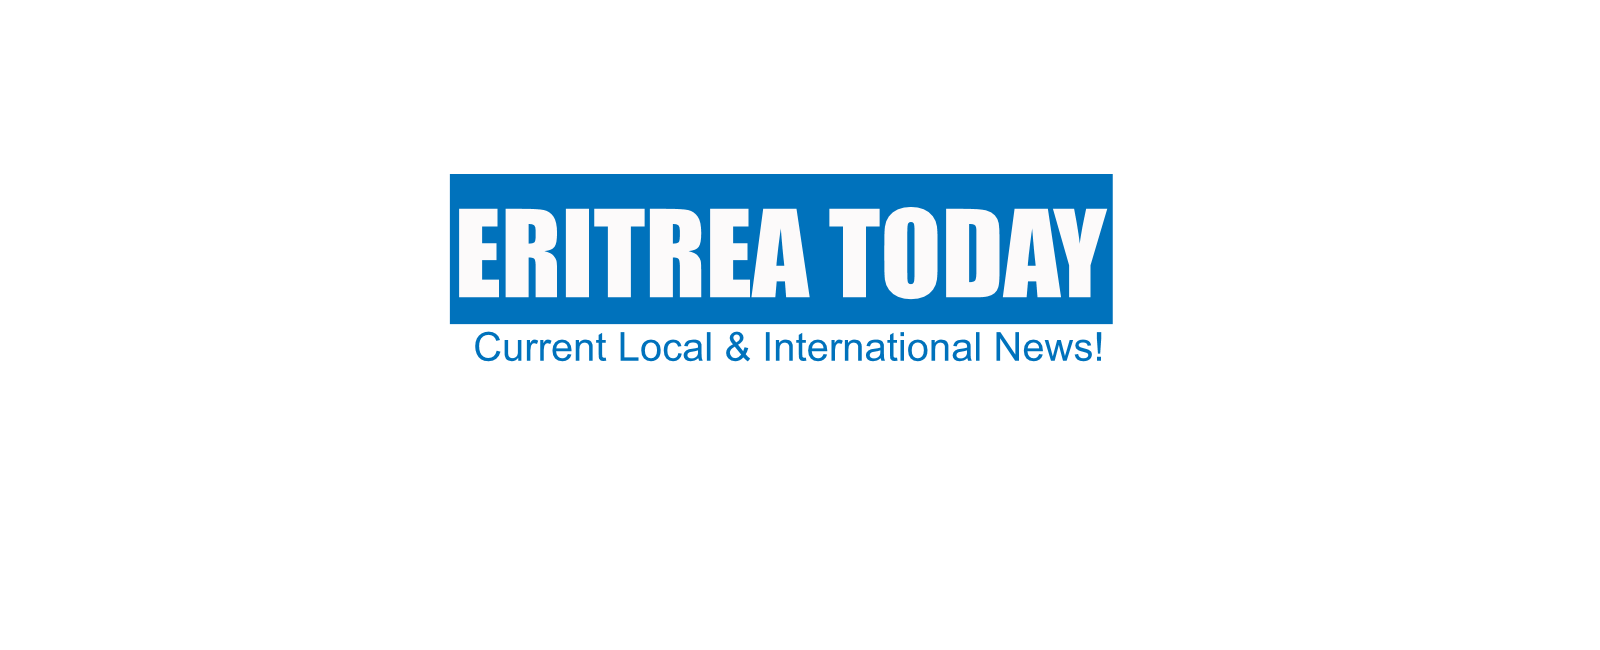 Zero trust in 2020 – EritreaToday.com